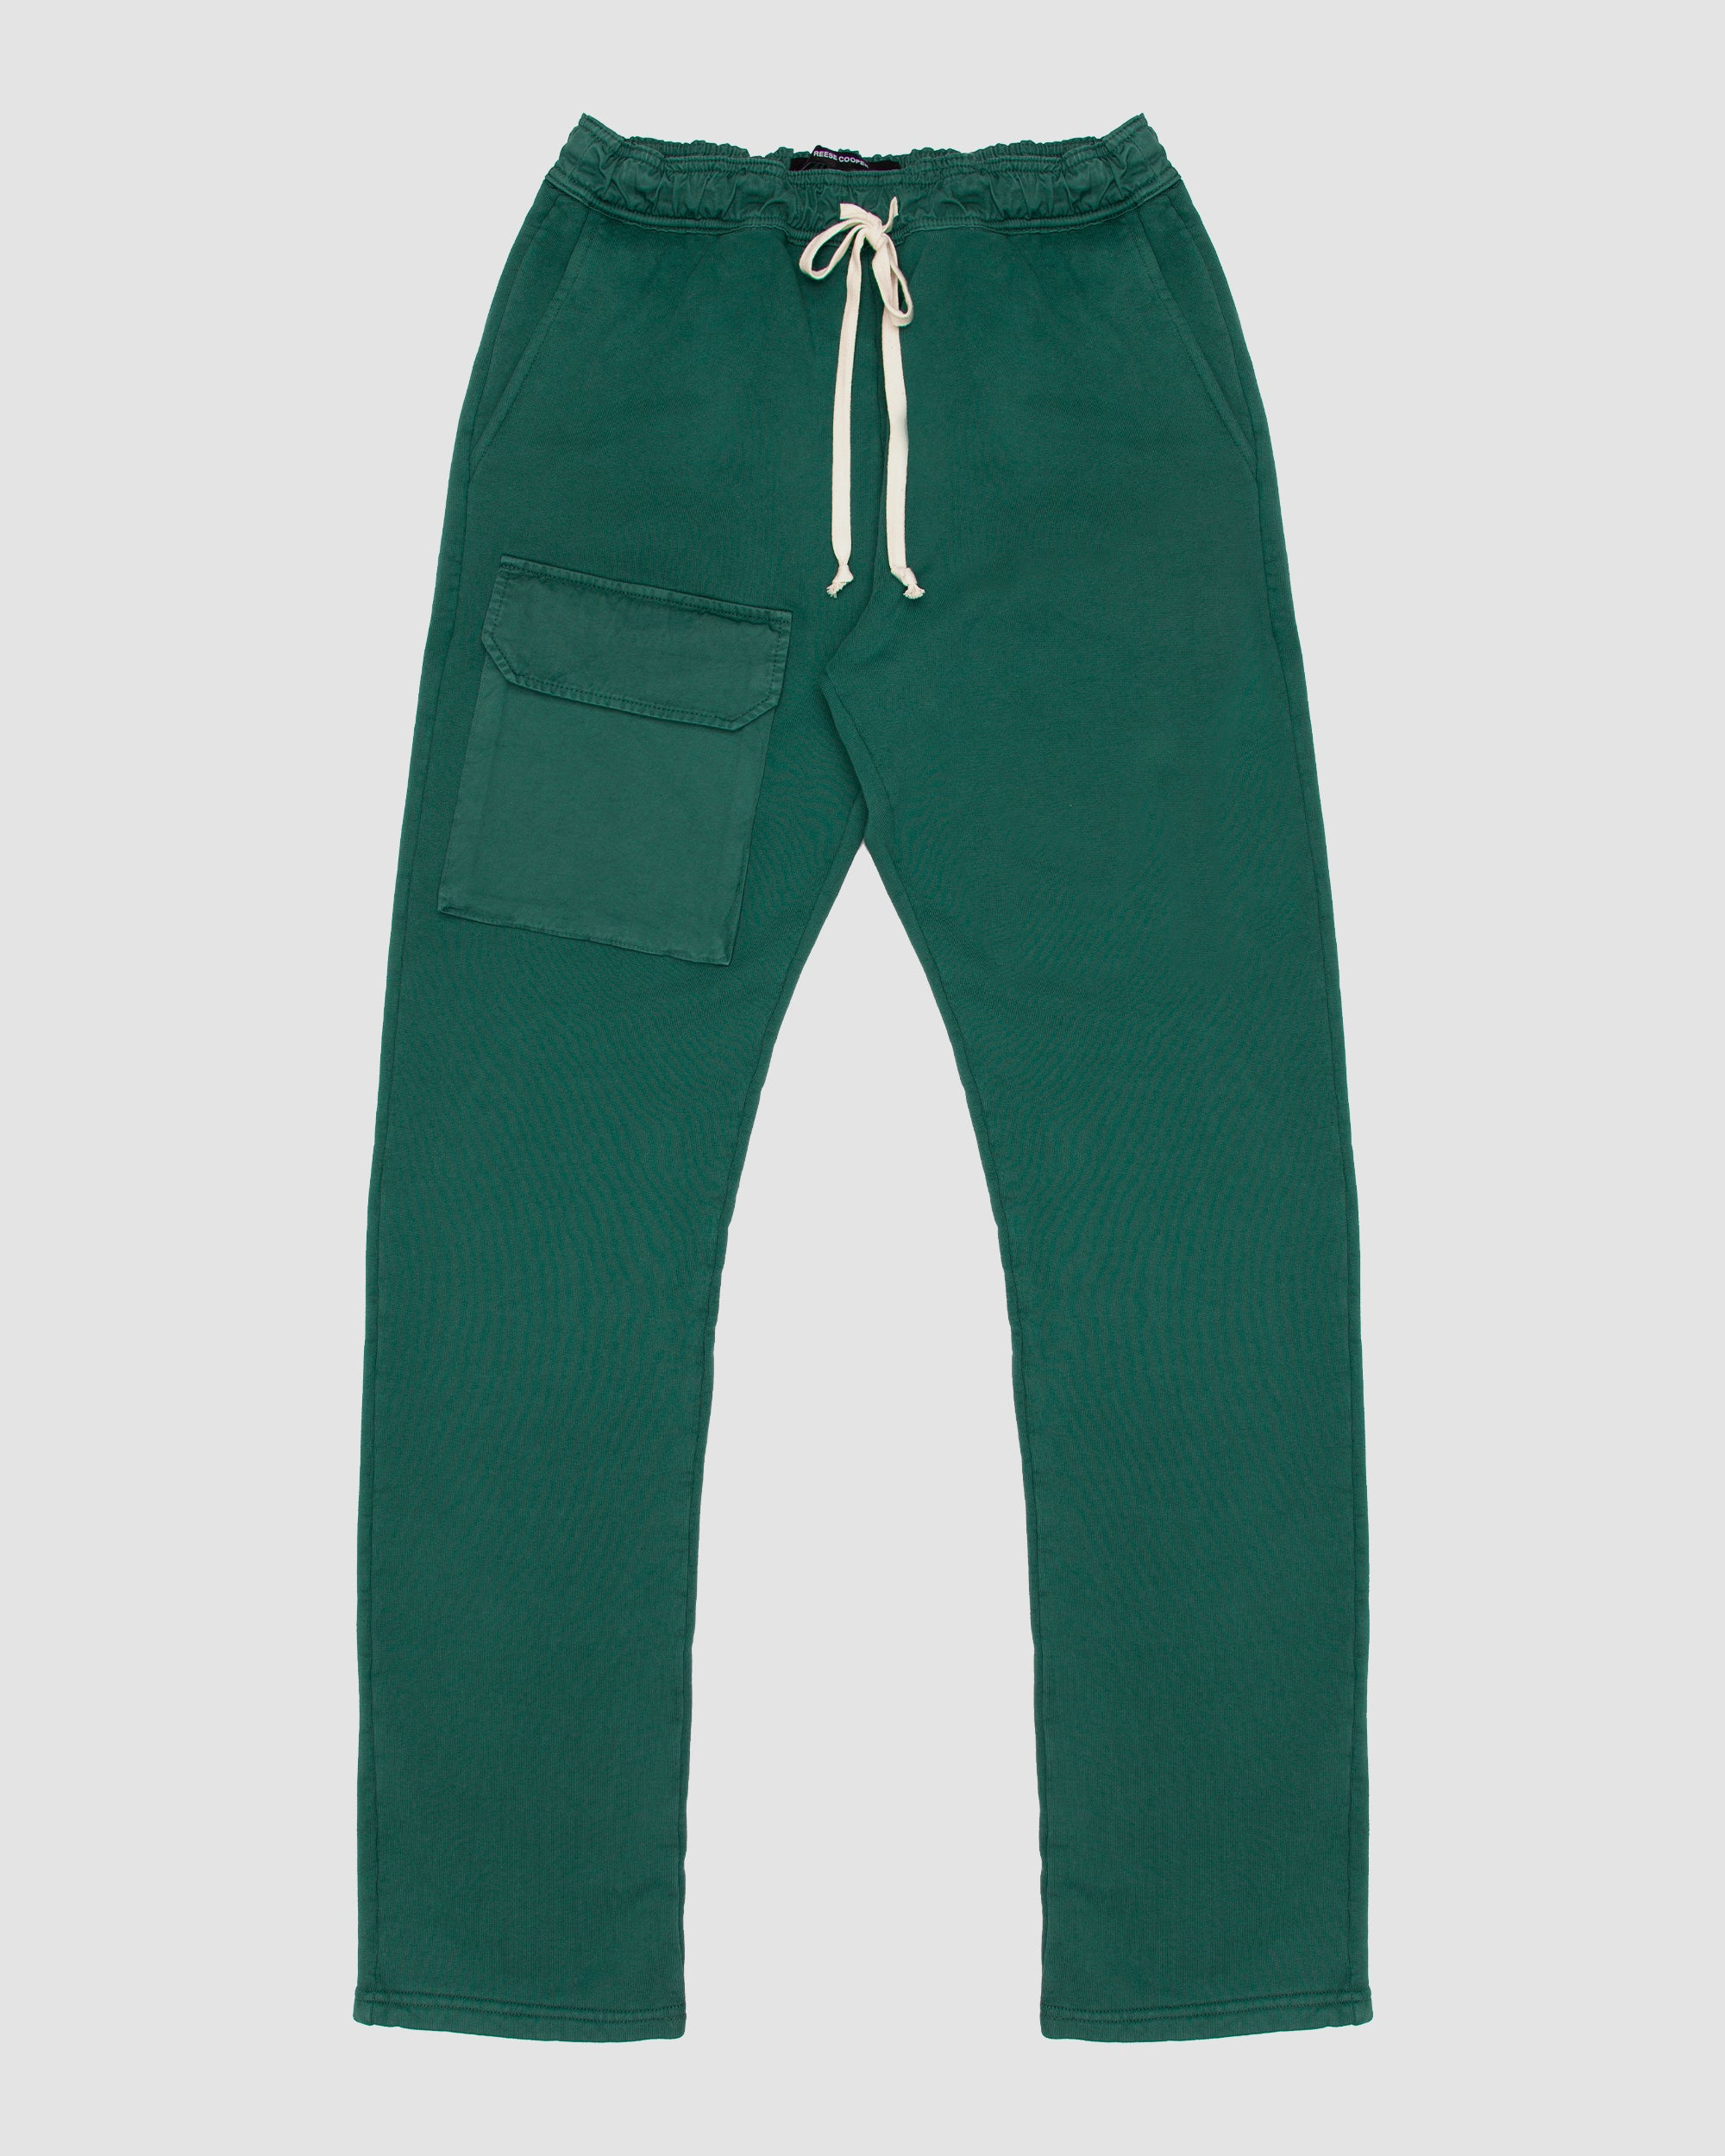 Patch Pocket Sweatpant in Green